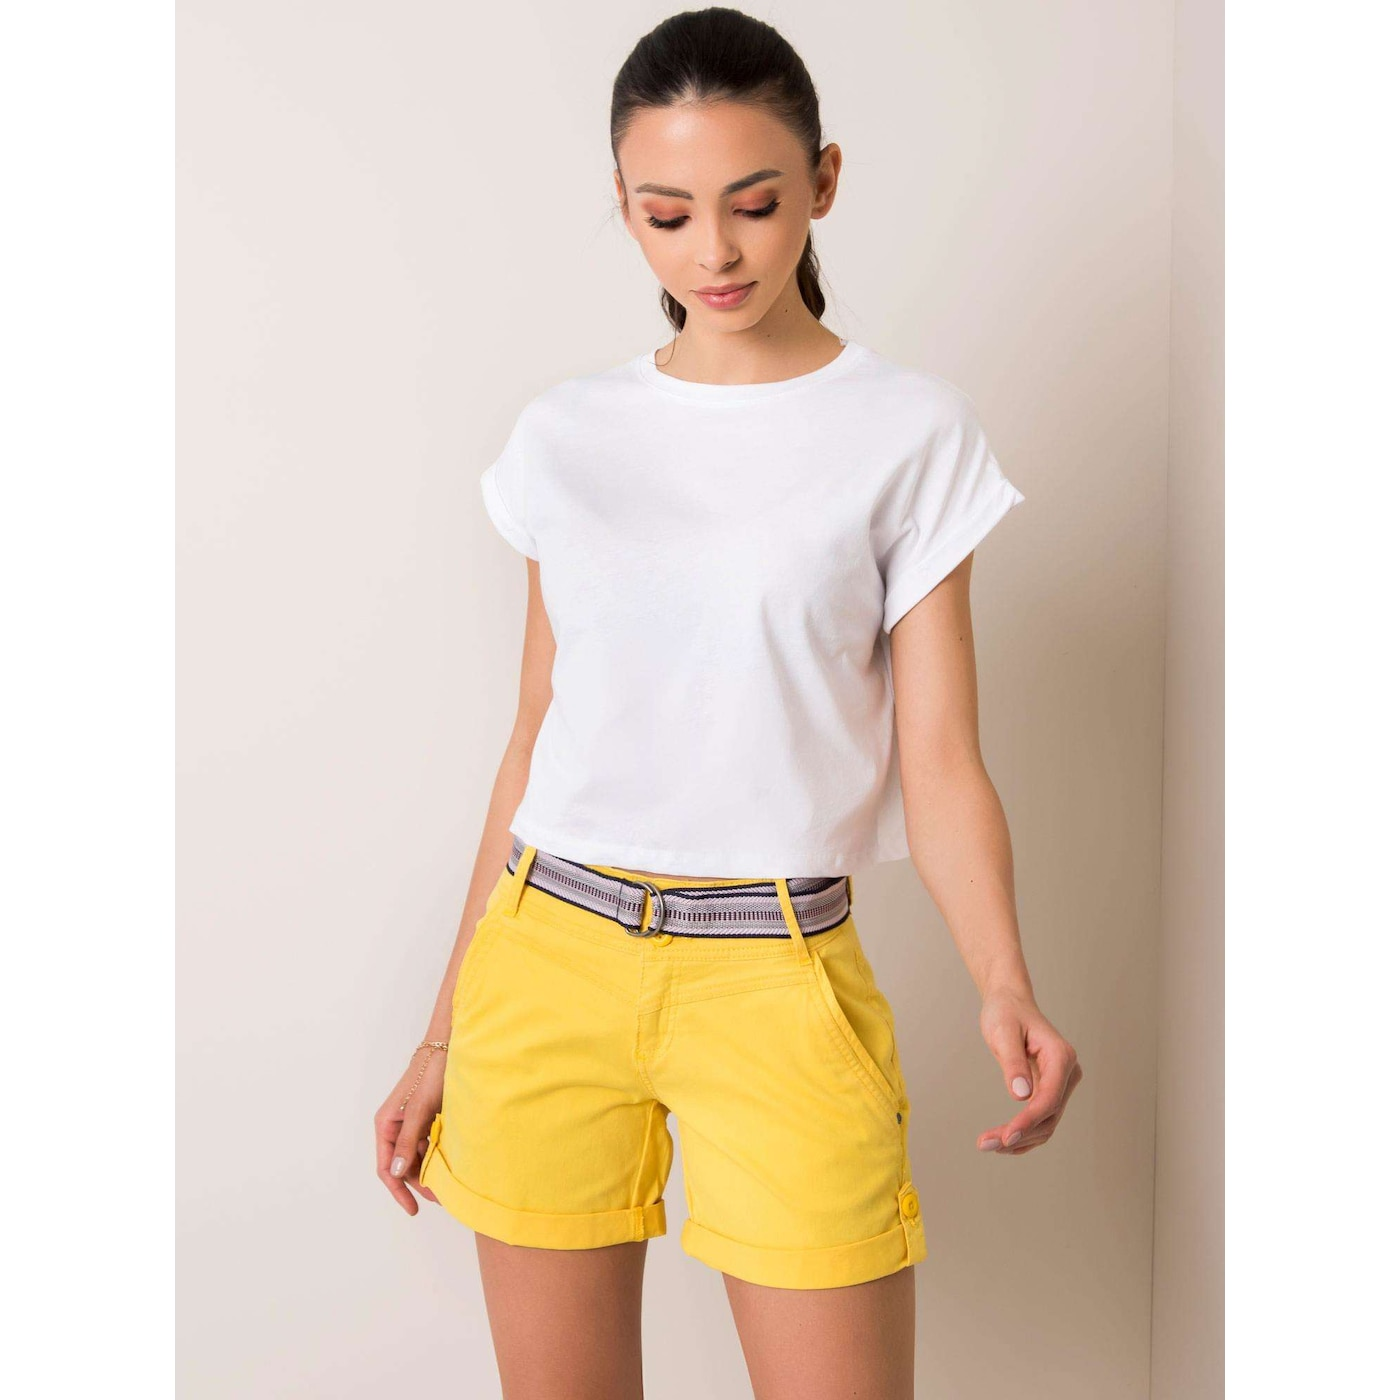 SUBLEVEL Yellow shorts with rolled up legs